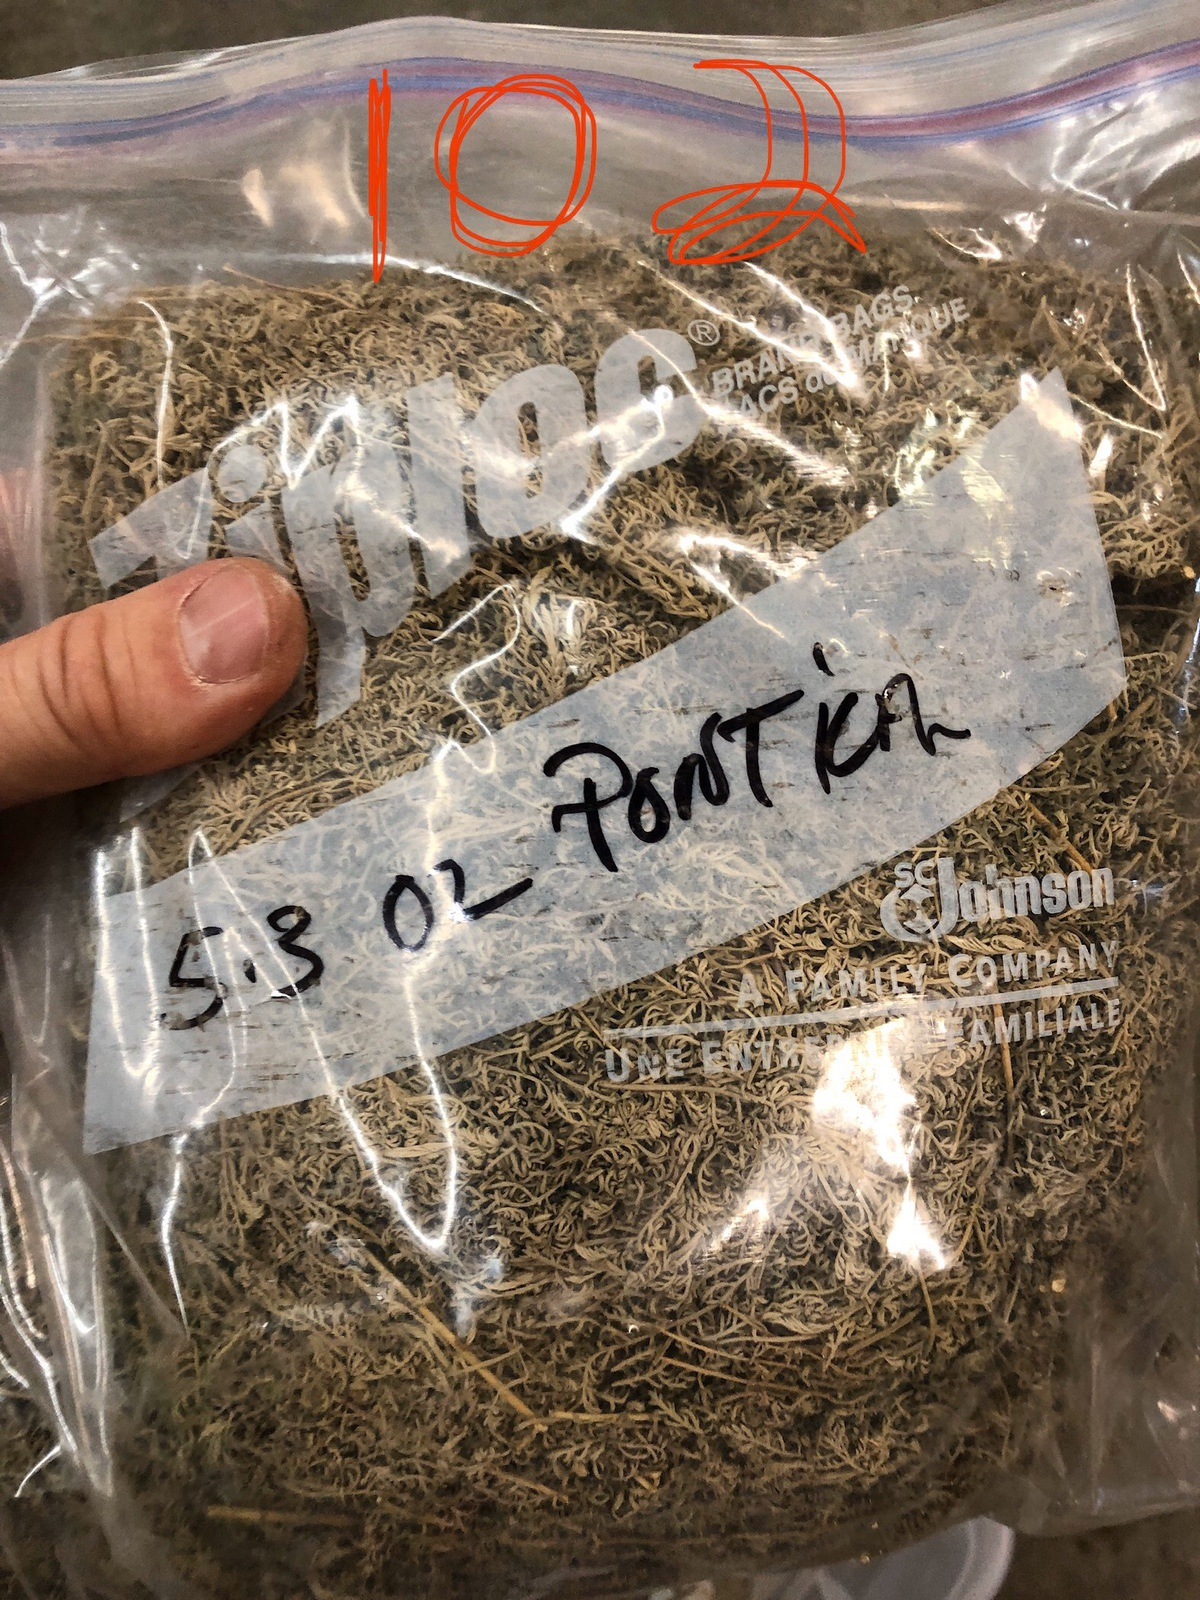 Lot of Herbs and Botanicals: Ponitica, Wormwood Herb C/S (Weight to be Provided | Rig Fee: $20 or HC - Image 8 of 14